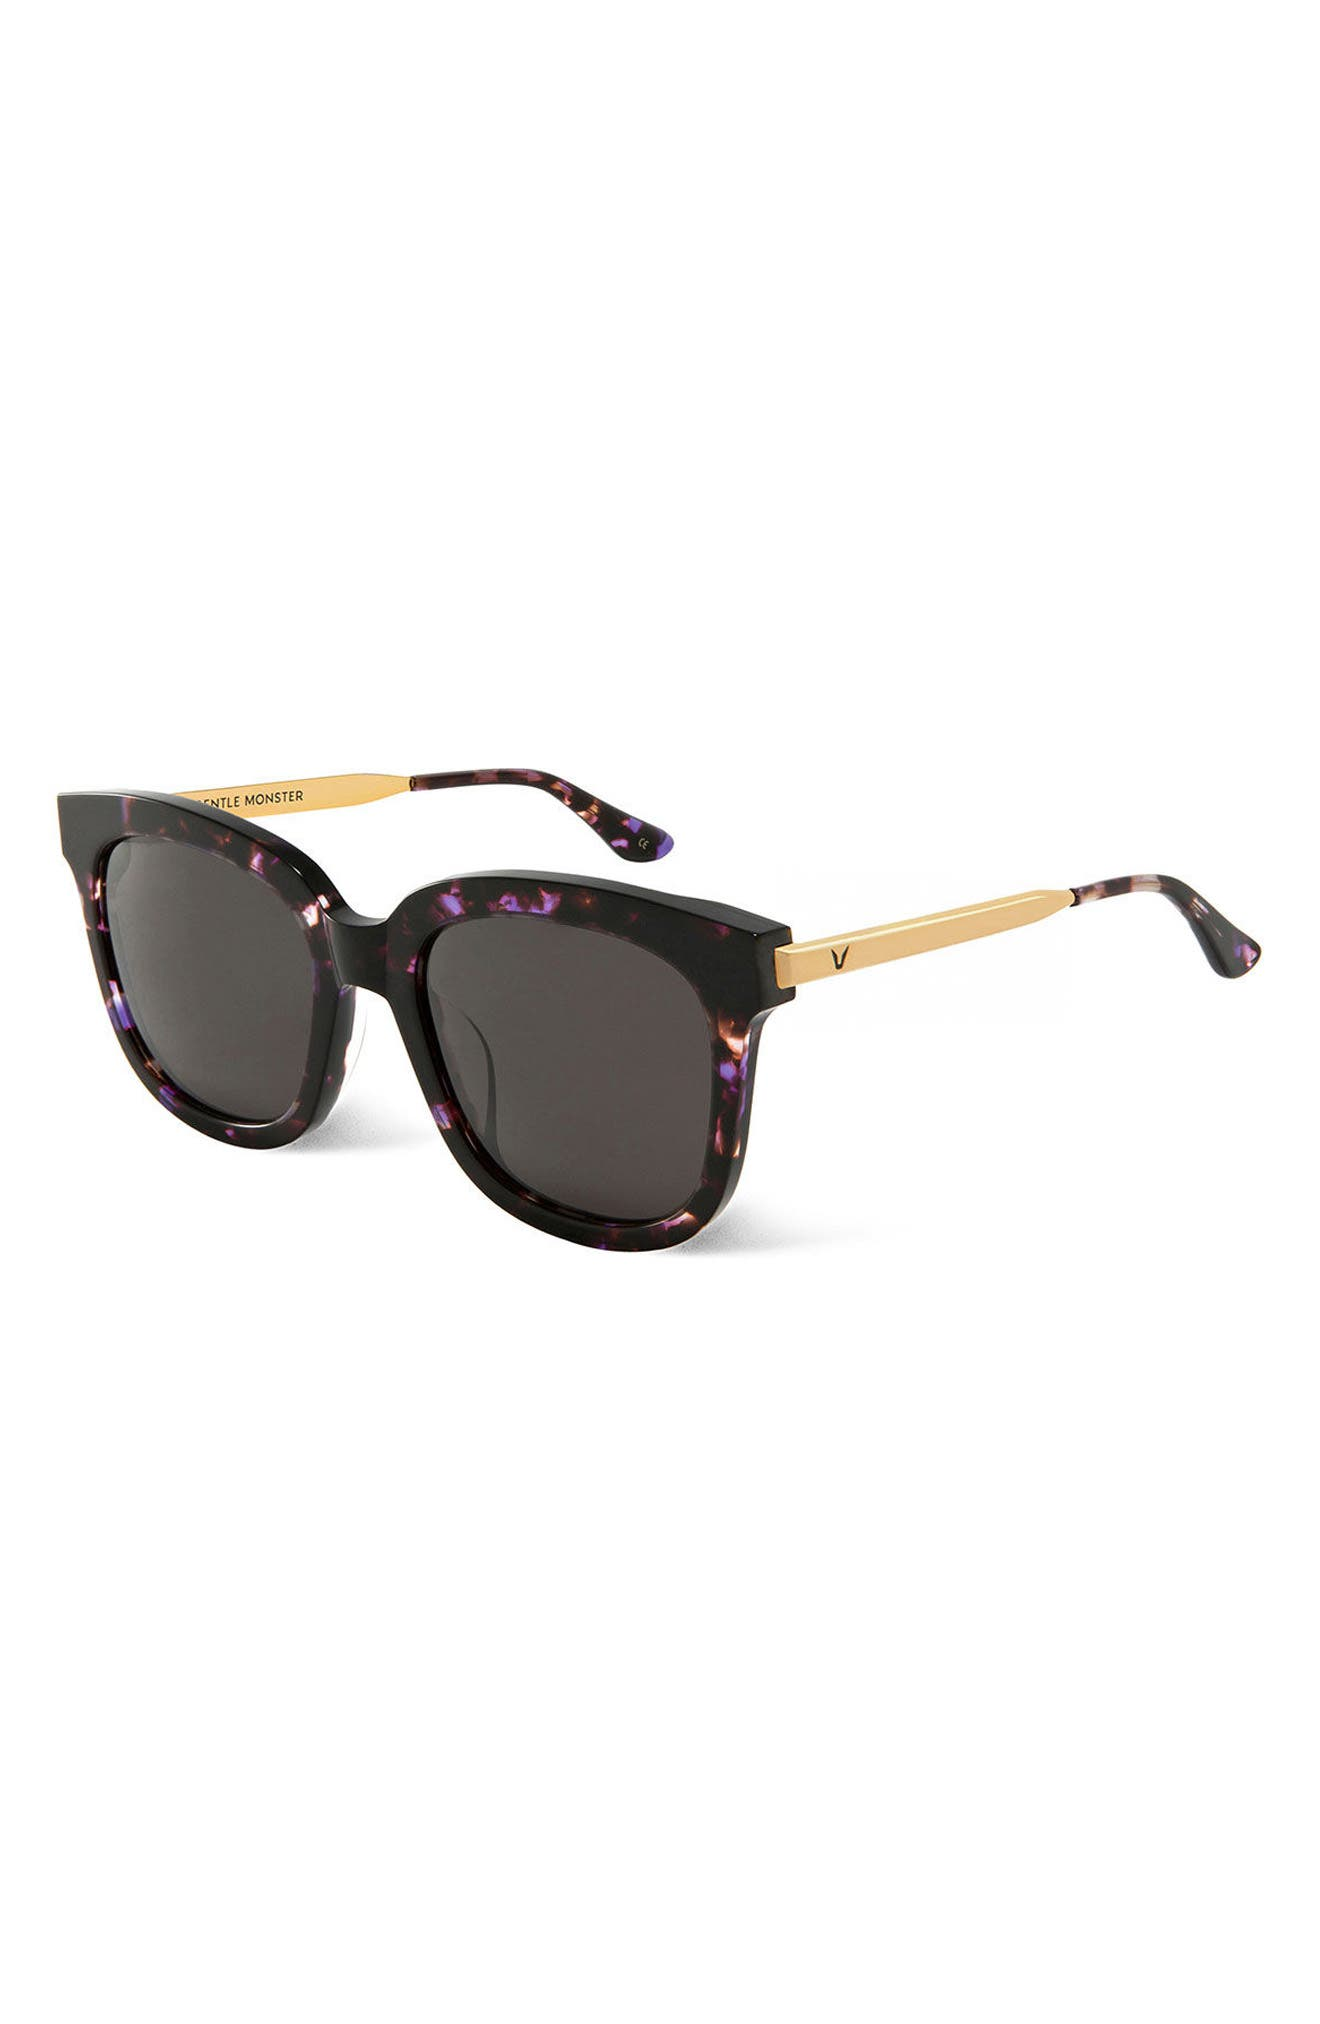 Absente 54mm Sunglasses,                             Alternate thumbnail 16, color,